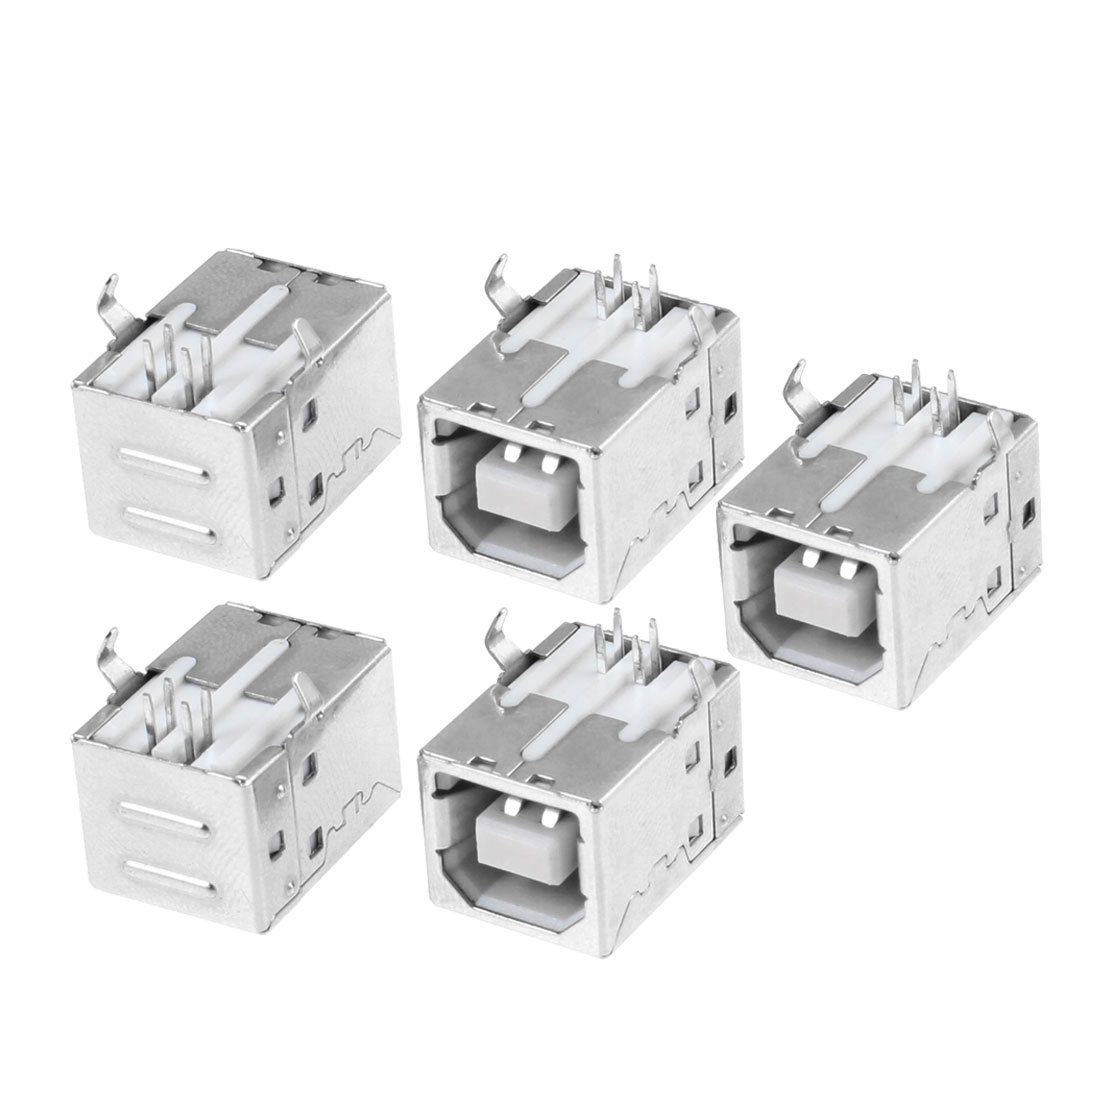 5 Pcs Port 90 Degree 4 Plug USB 2.0 Type B Female Socket